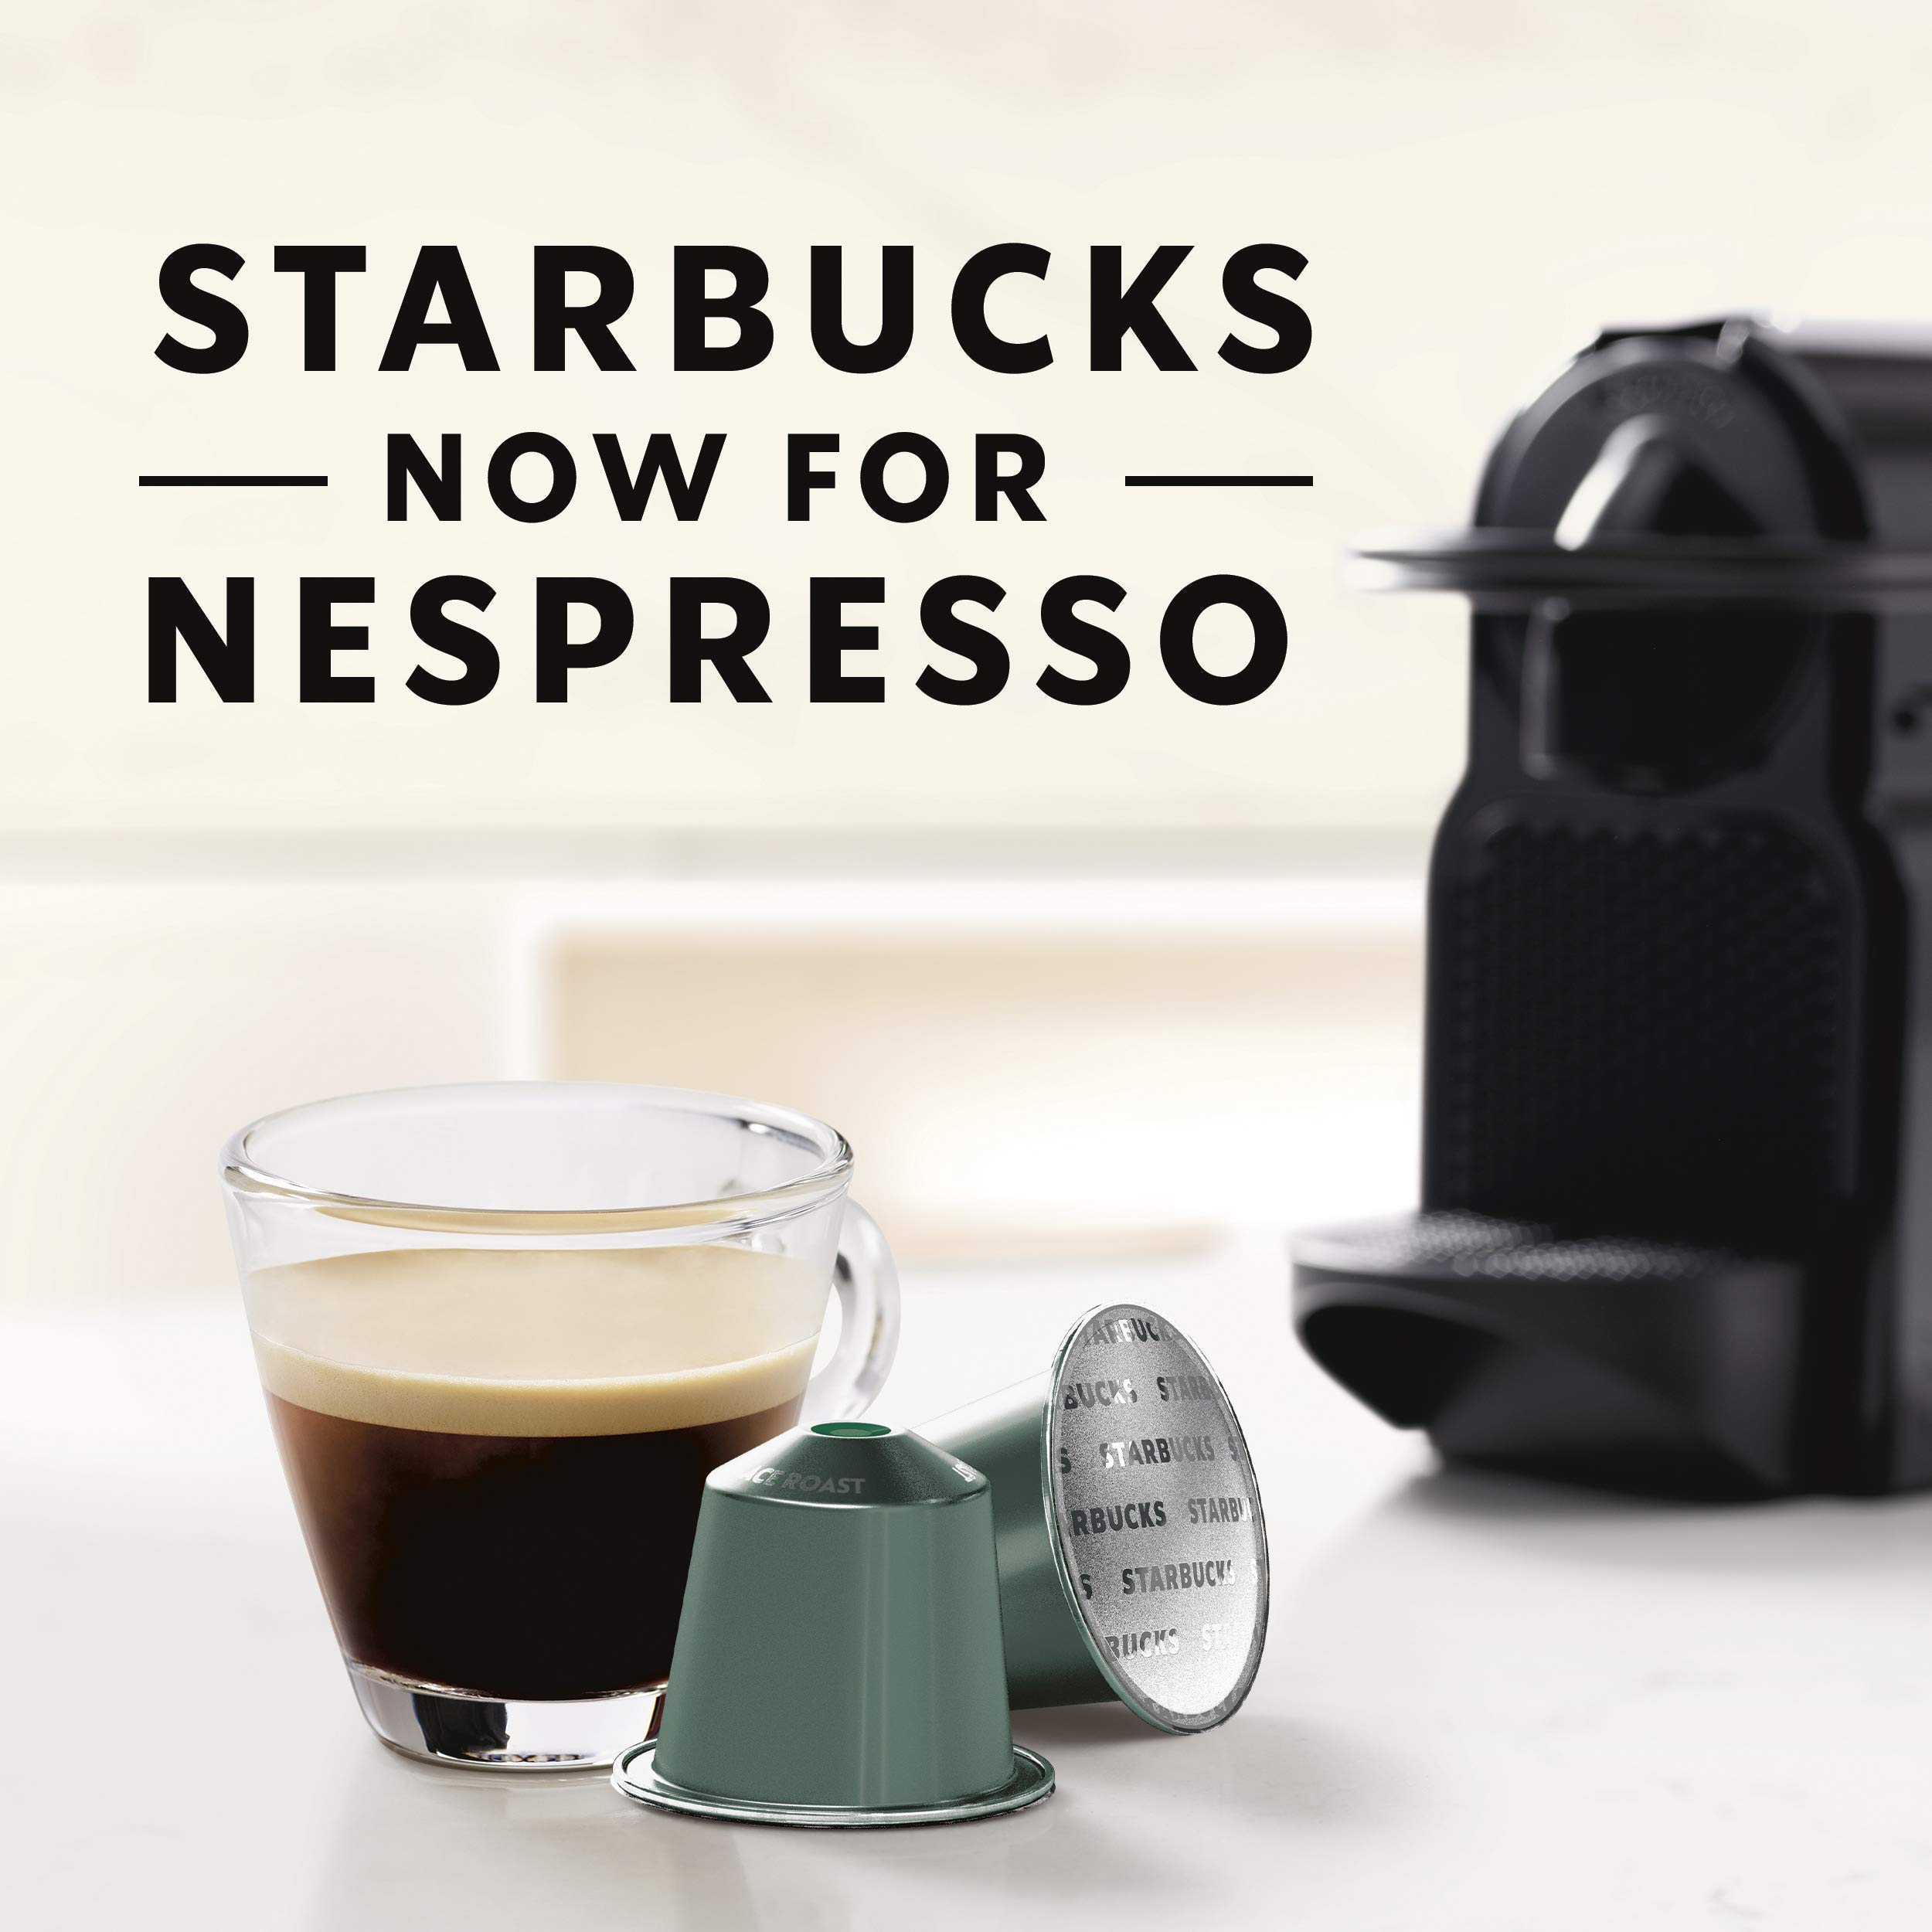 Starbucks by Nespresso, Pike Place Roast (50-count single serve capsules, compatible with Nespresso Original Line System) by Starbucks for Nespresso (Image #2)